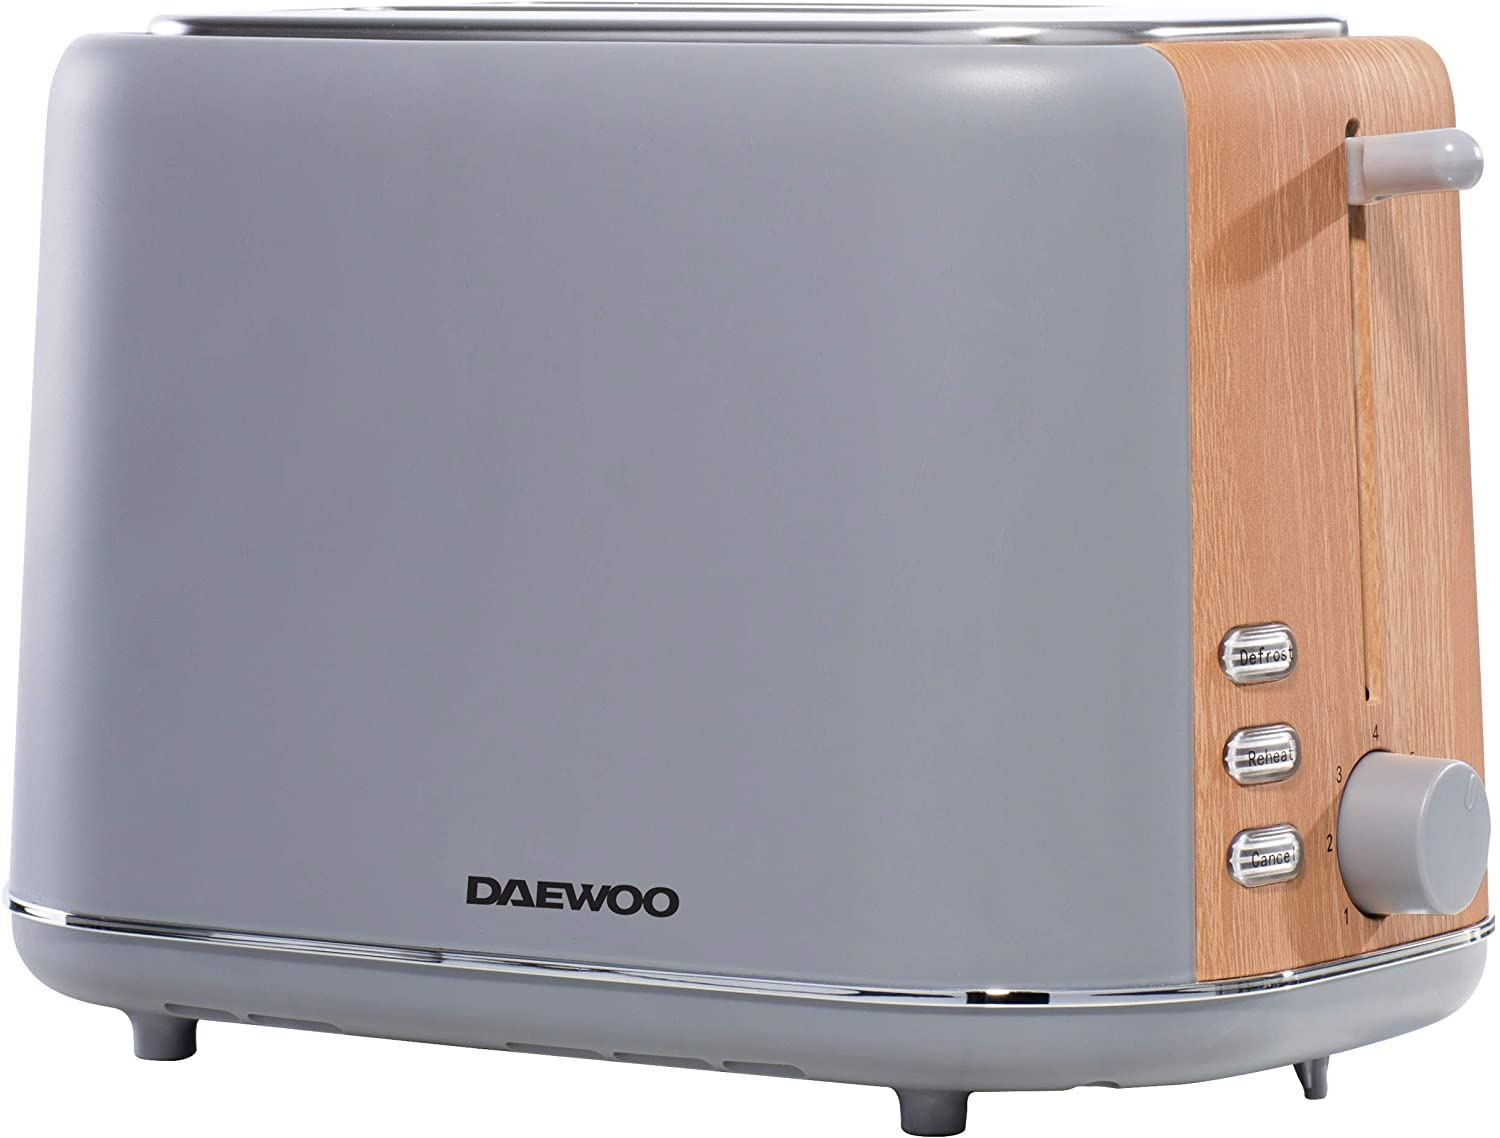 Daewoo Stockholm 2 Slice Toaster with Wood Effect - Grey SDA1737